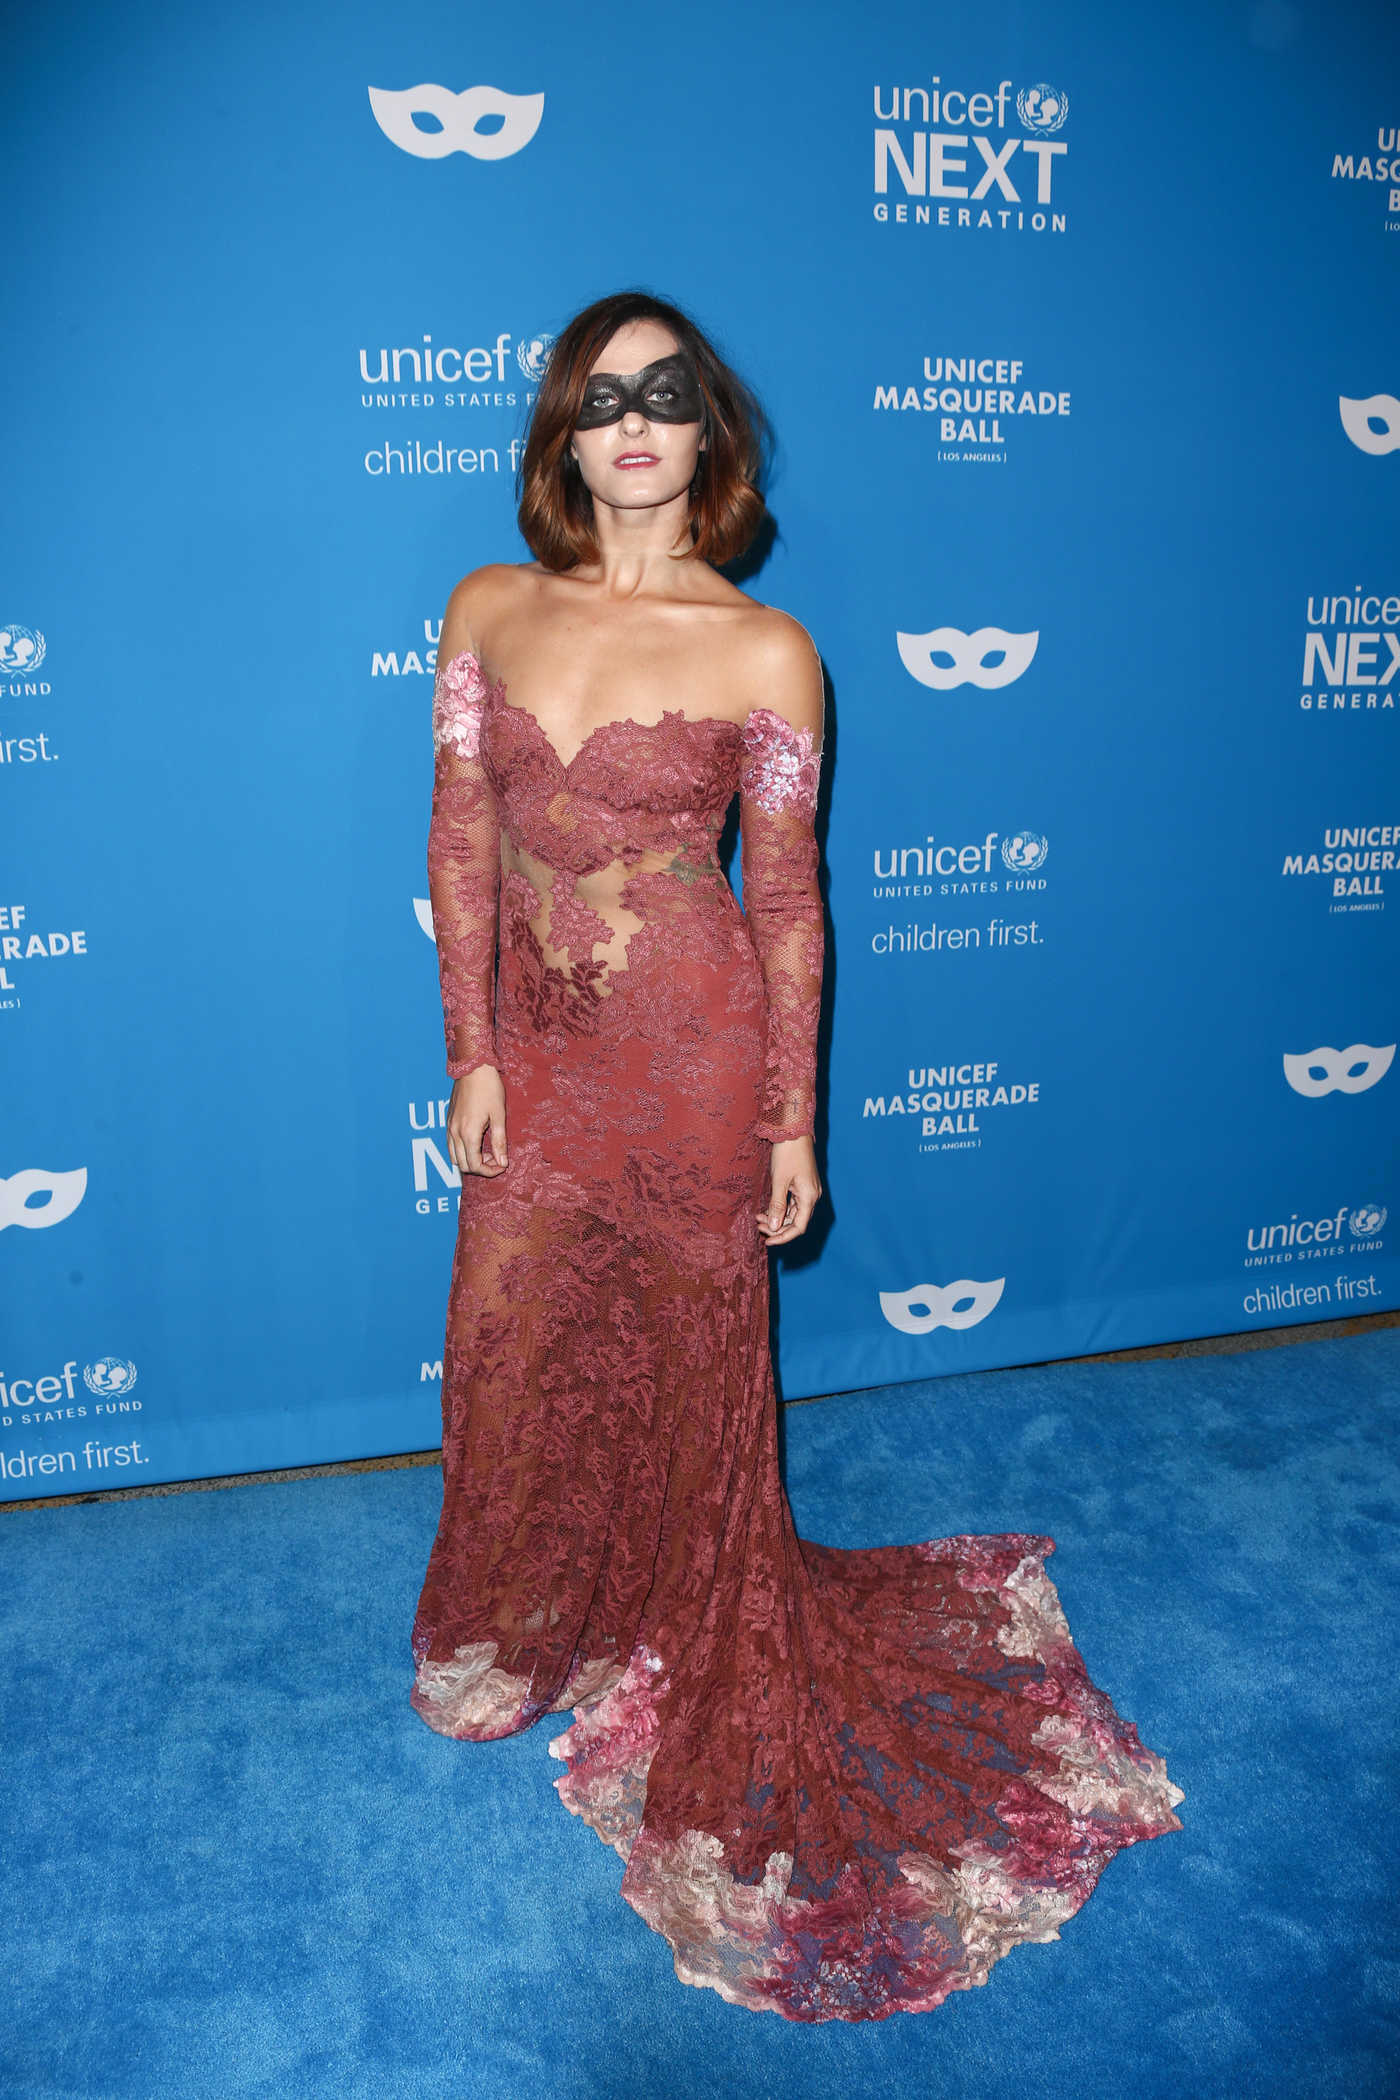 Scout Taylor-Compton at the 2016 UNICEF Masquerade Ball in Los Angeles 10/27/2016